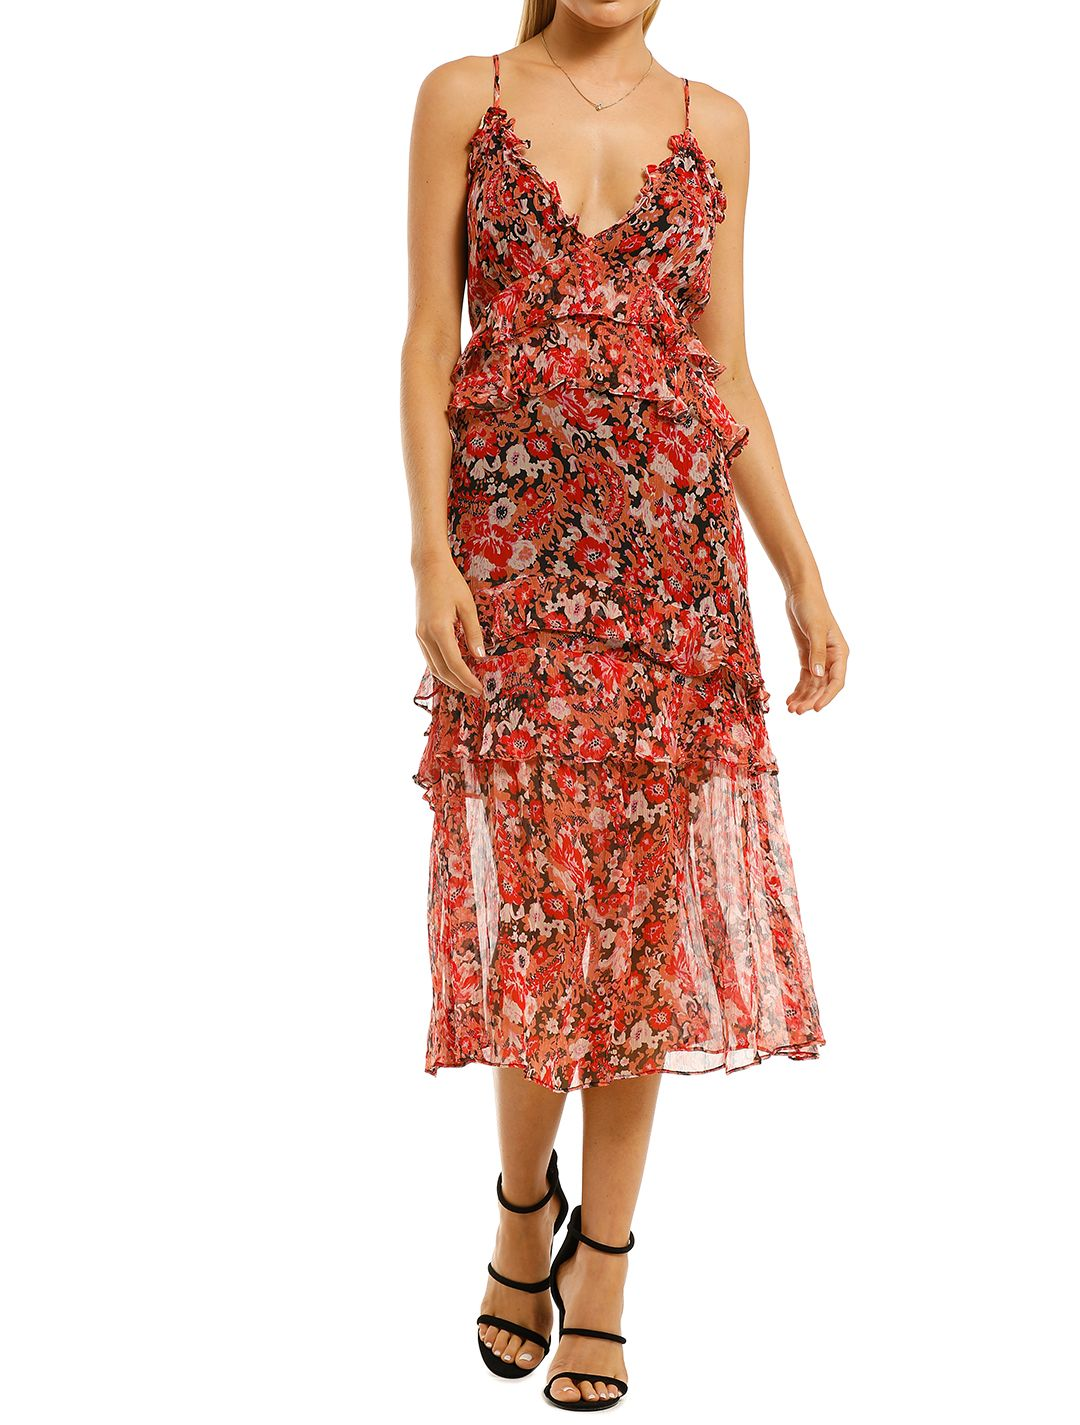 Stevie-May-No-Such-Thing-Midi-Dress-Front